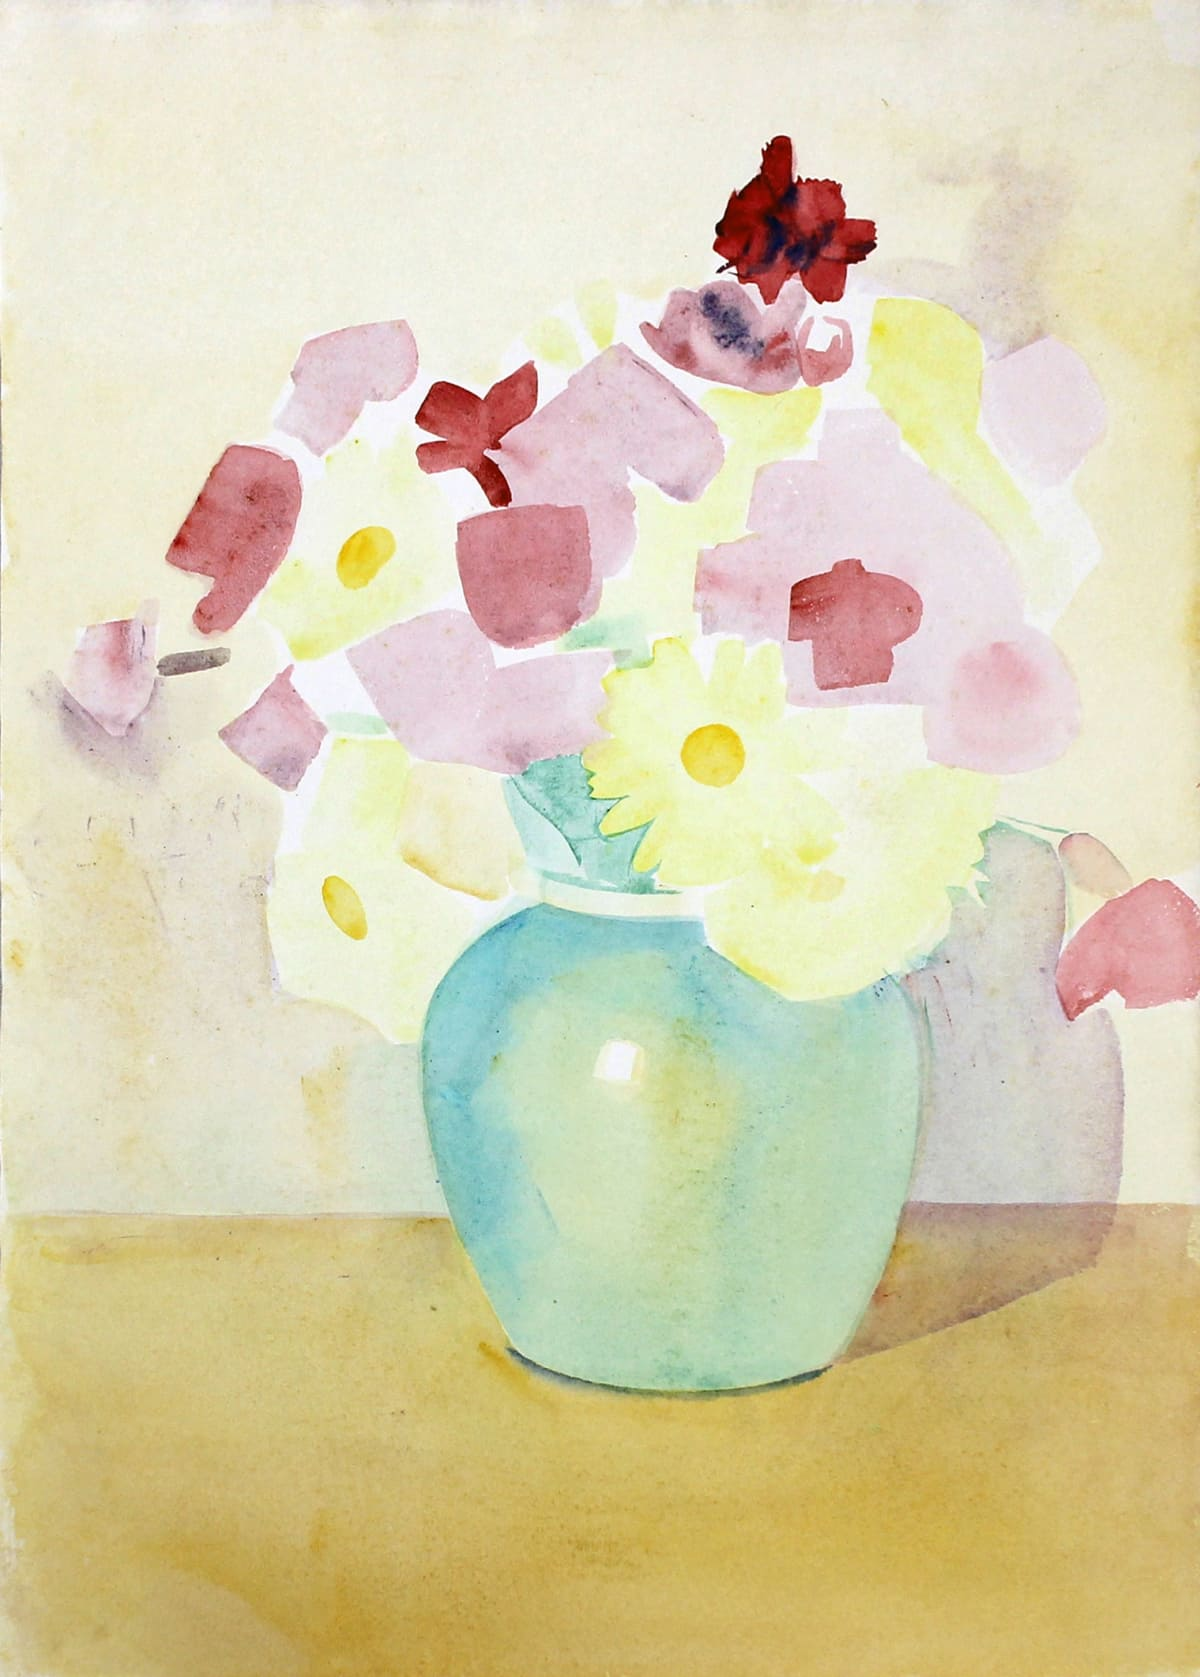 Rita Angus Flowers in Vase (Waikanae), 1950s Watercolour on paper 14.7 x 10.1 in 37.3 x 25.6 cm